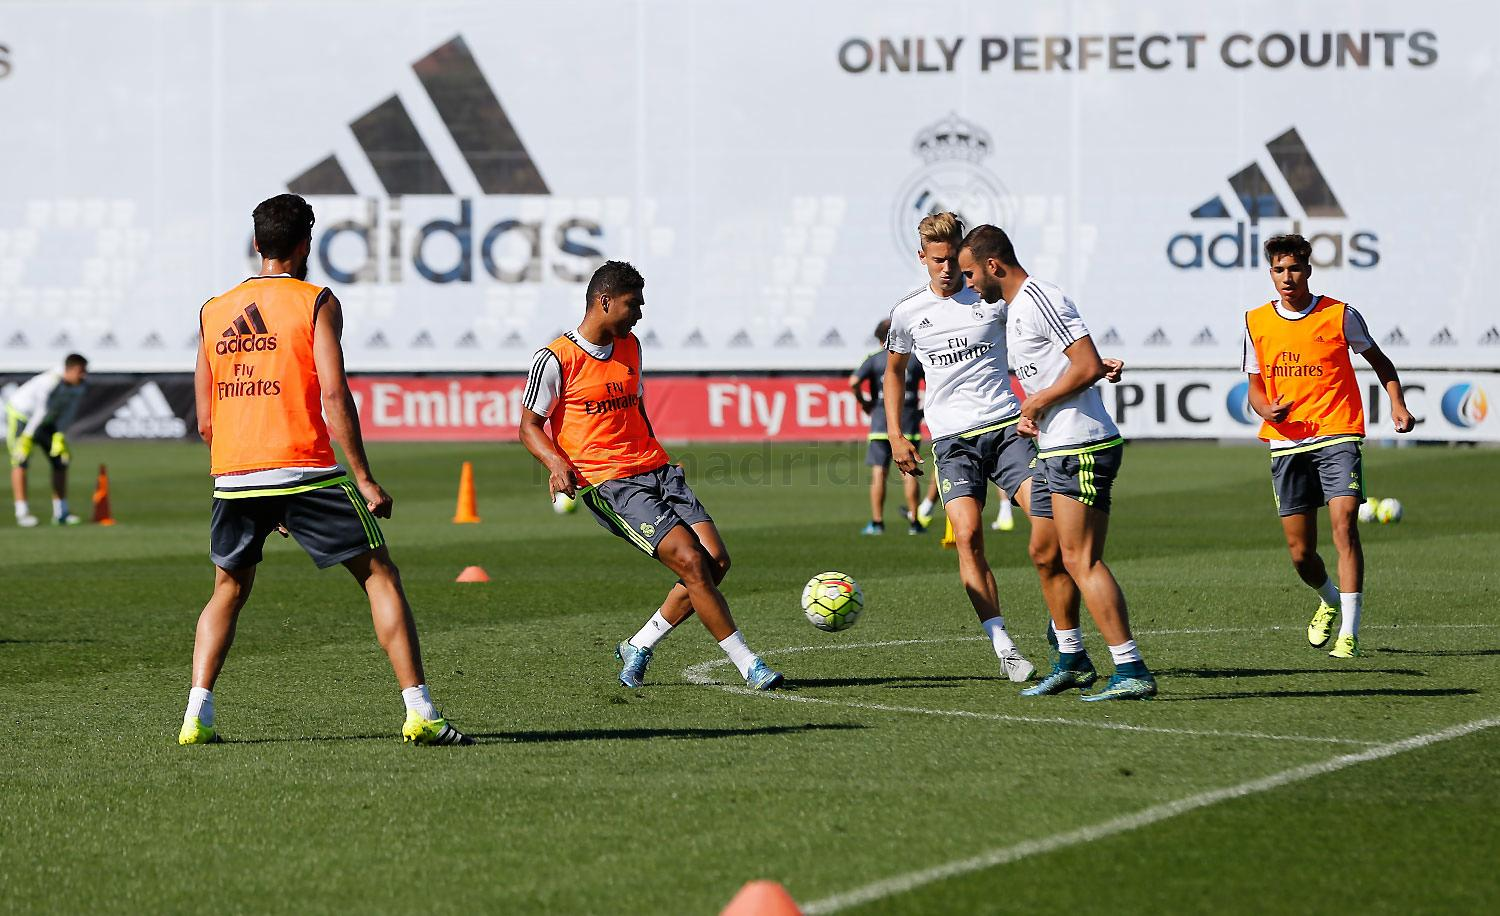 Real Madrid - Entrenamiento del Real Madrid - 24-09-2015